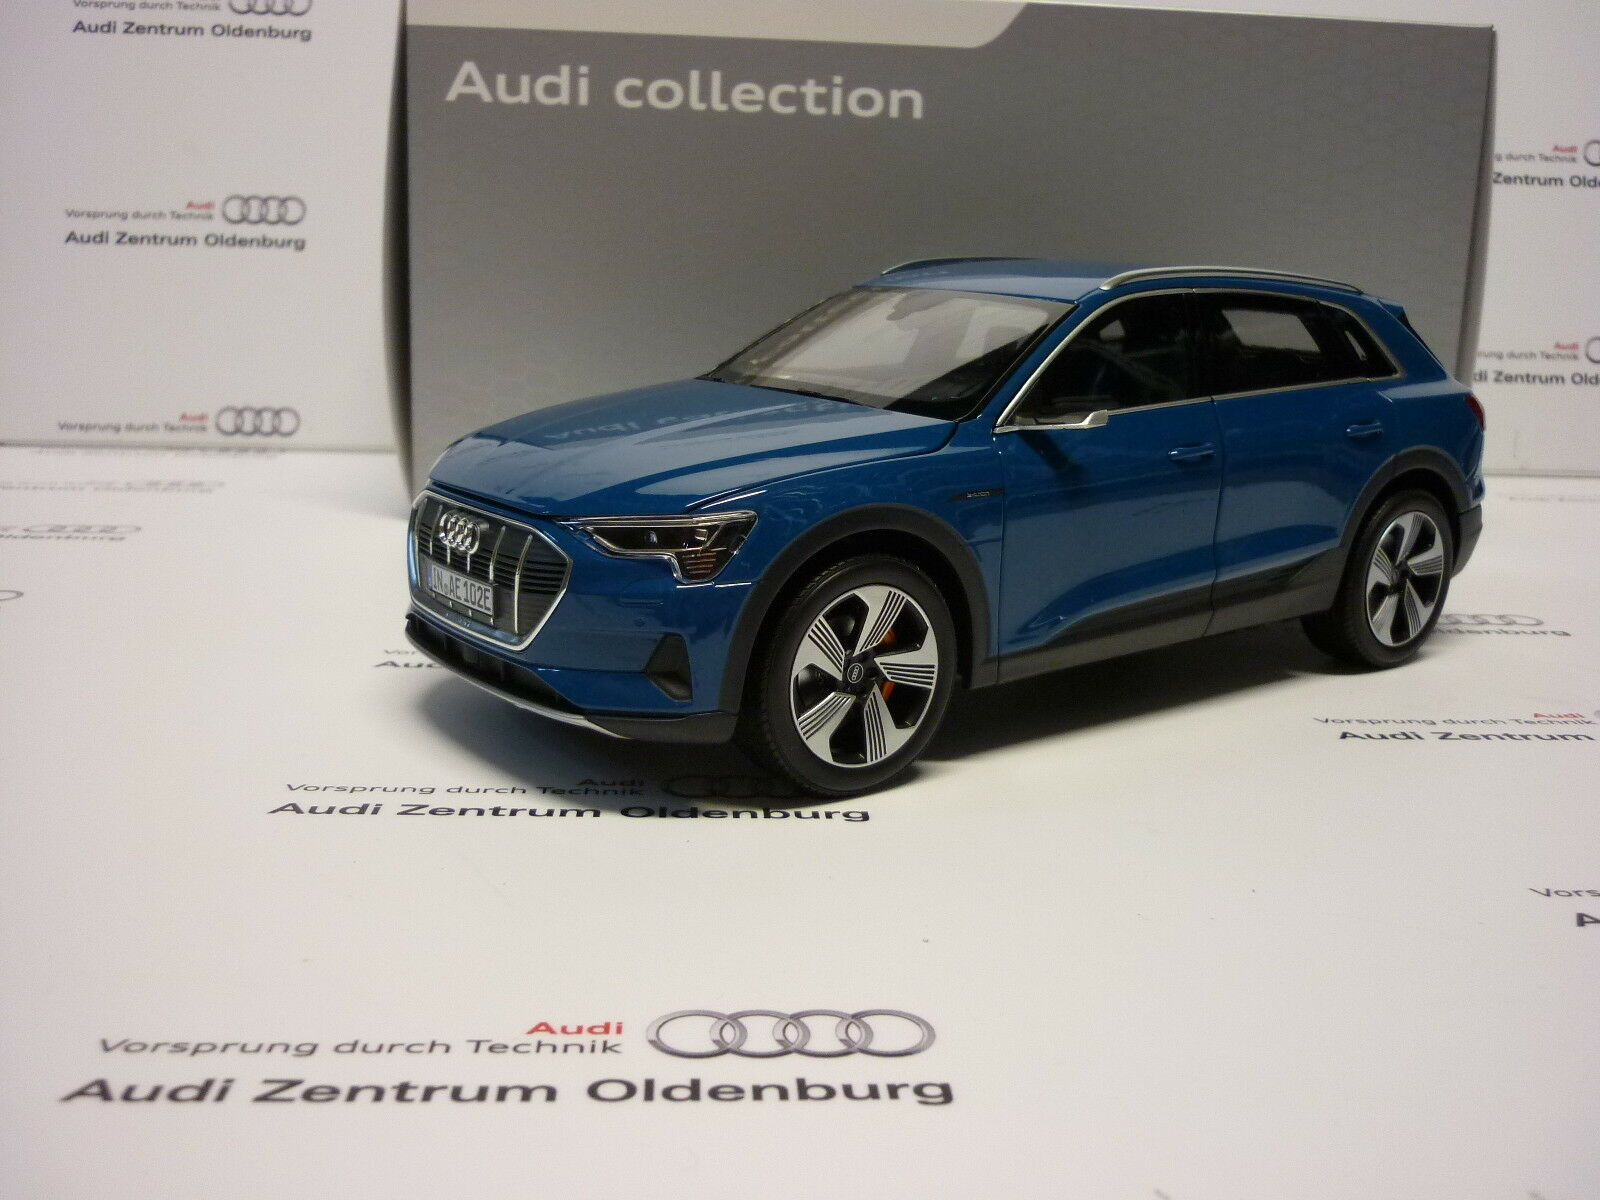 Original Audi Model Car Audi E-Tron in 1 18 Antiguablue